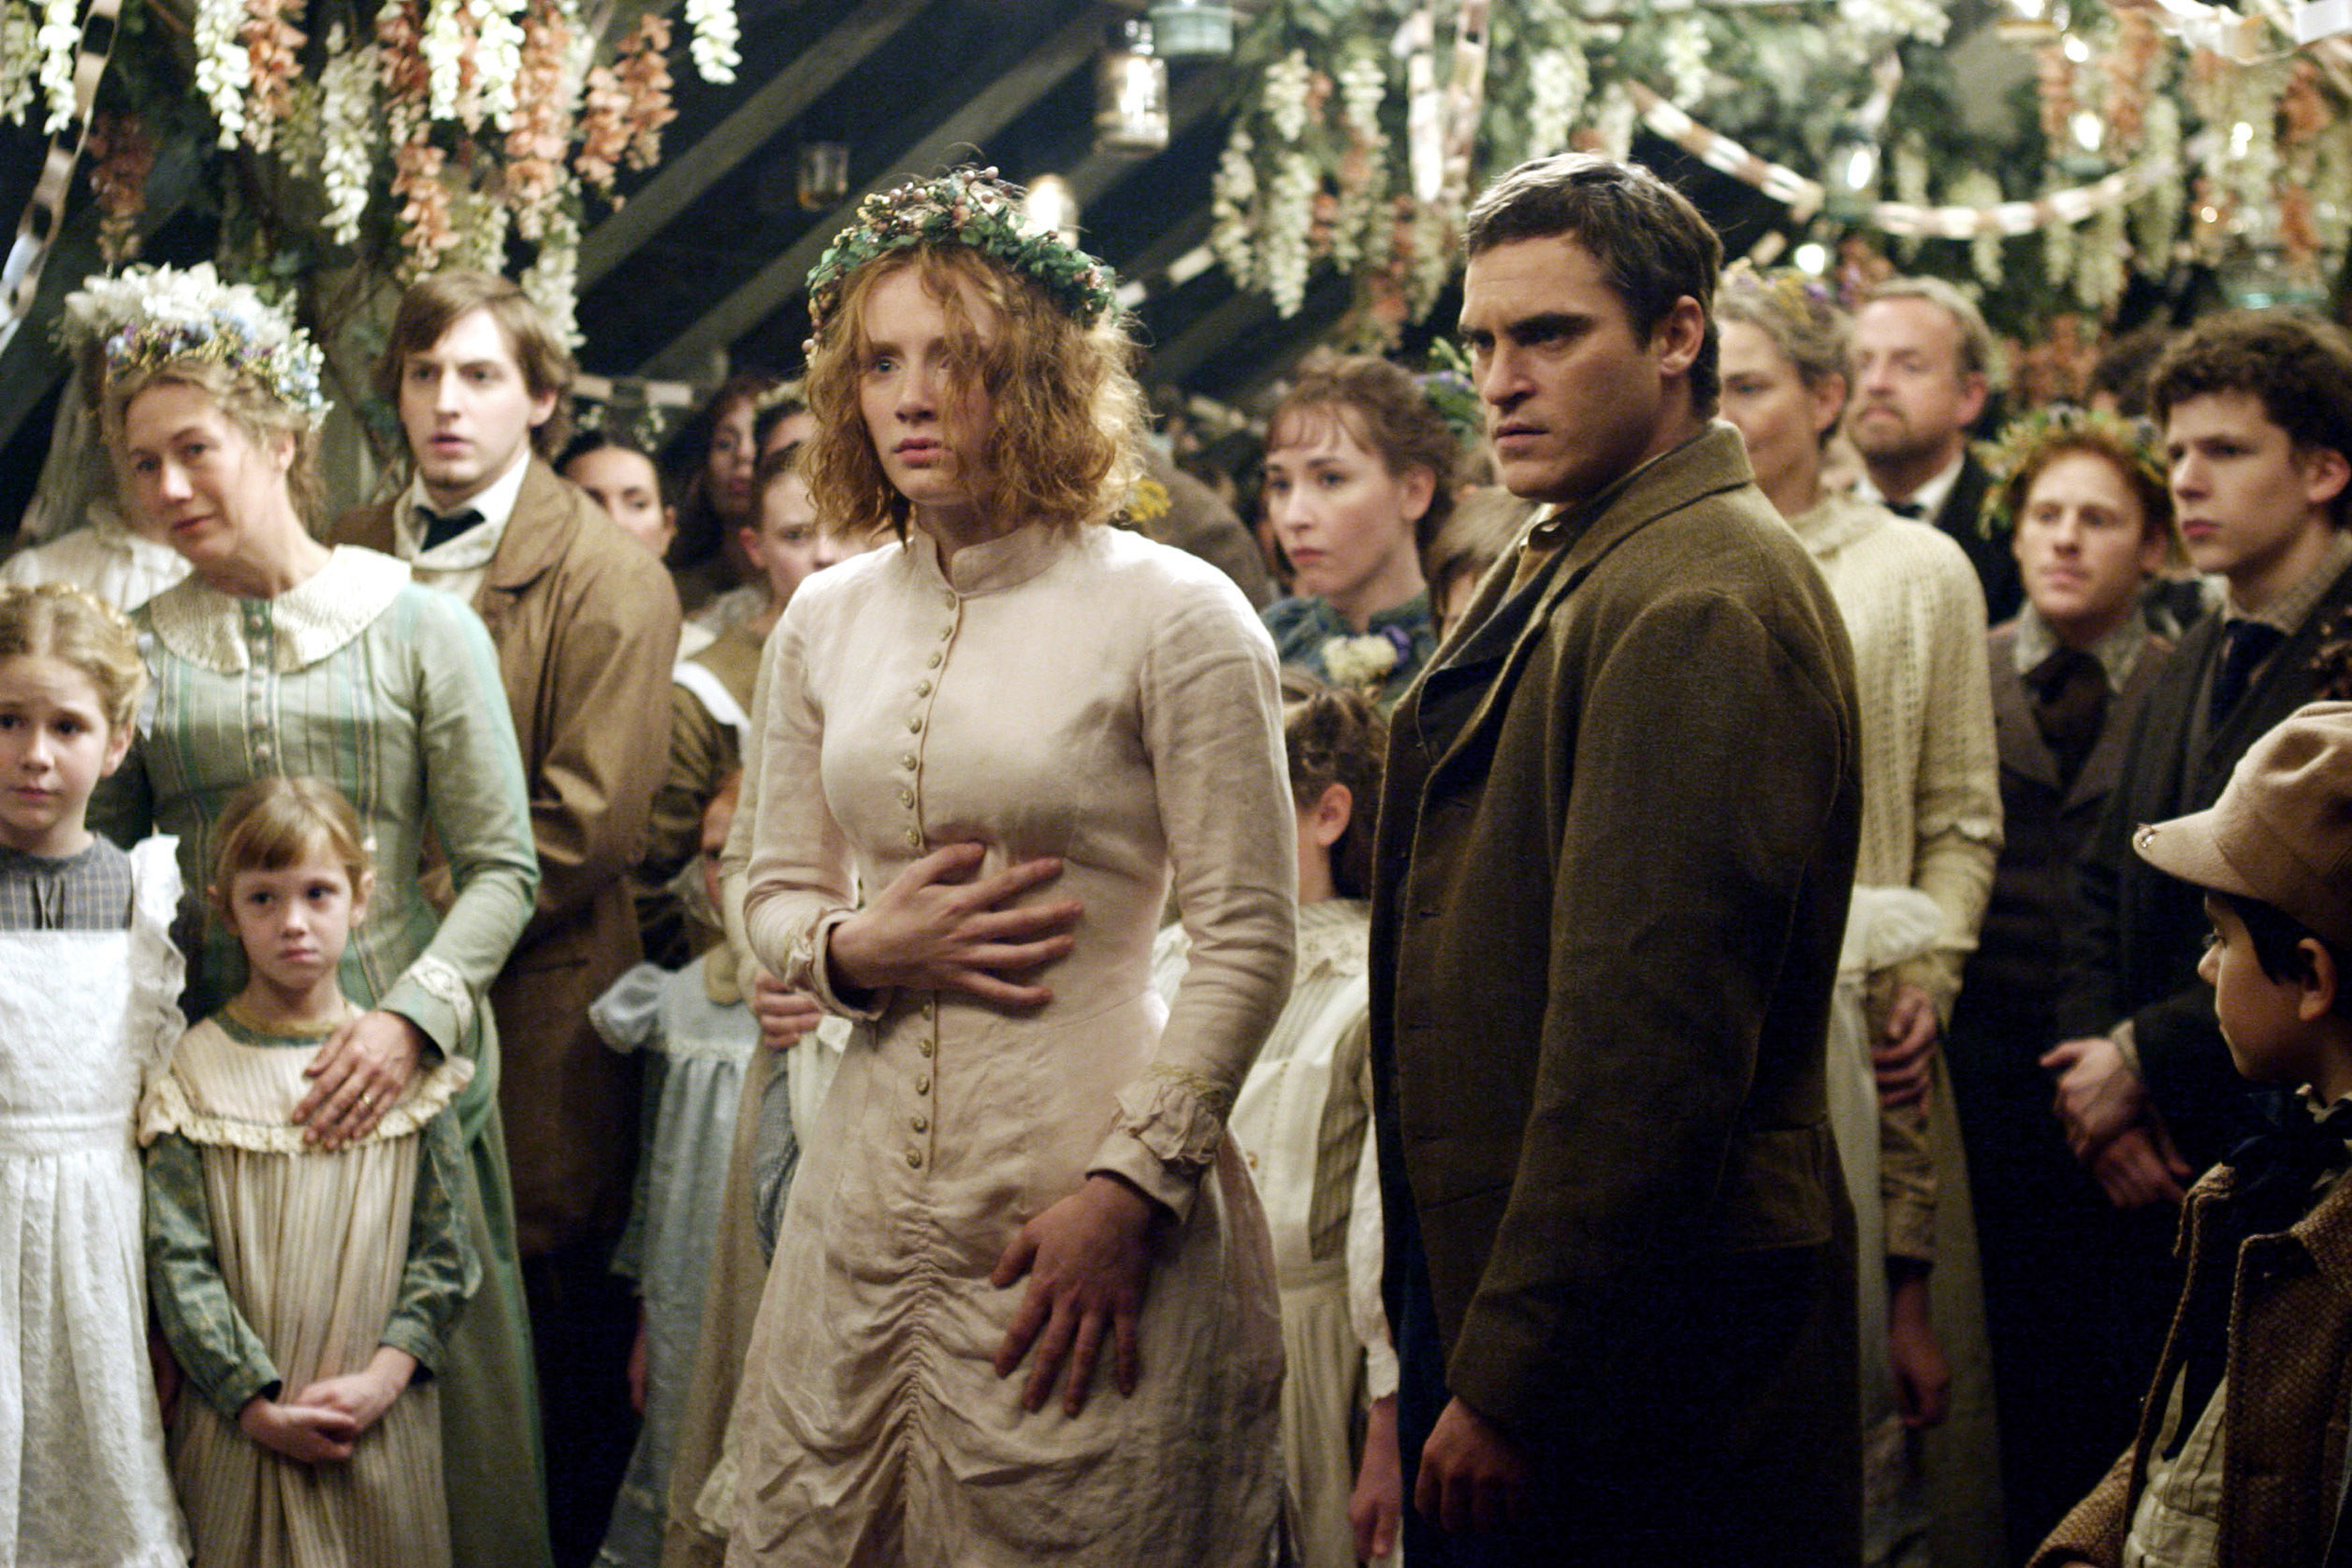 Ivy Walking and Lucius Hunt gather in a crowd looking concered